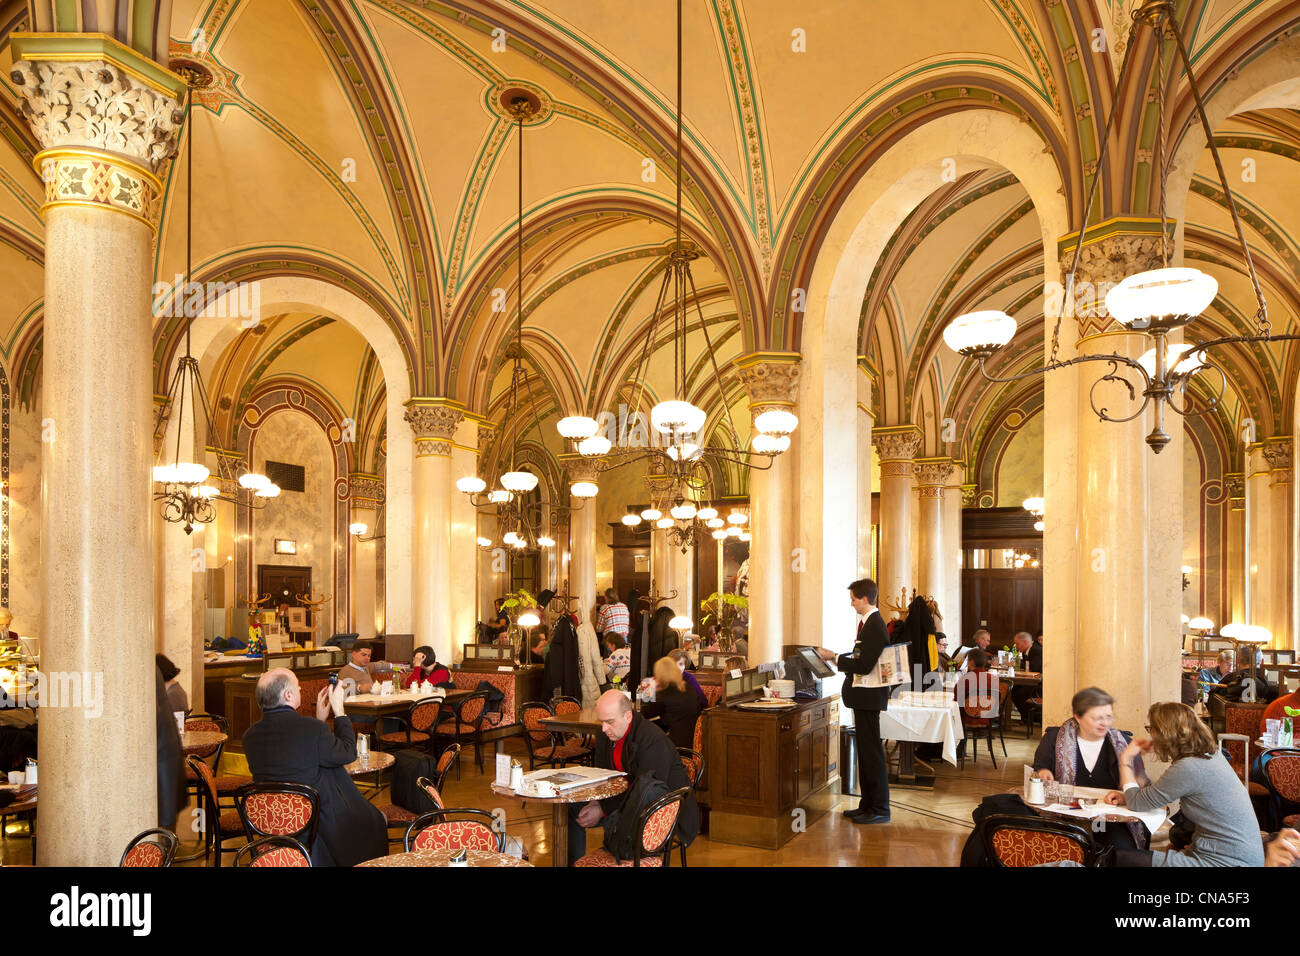 Austria, Vienna, historic center listed as World Heritage by UNESCO, Palais Ferstel, coffee Central opened in 1876 - Stock Image